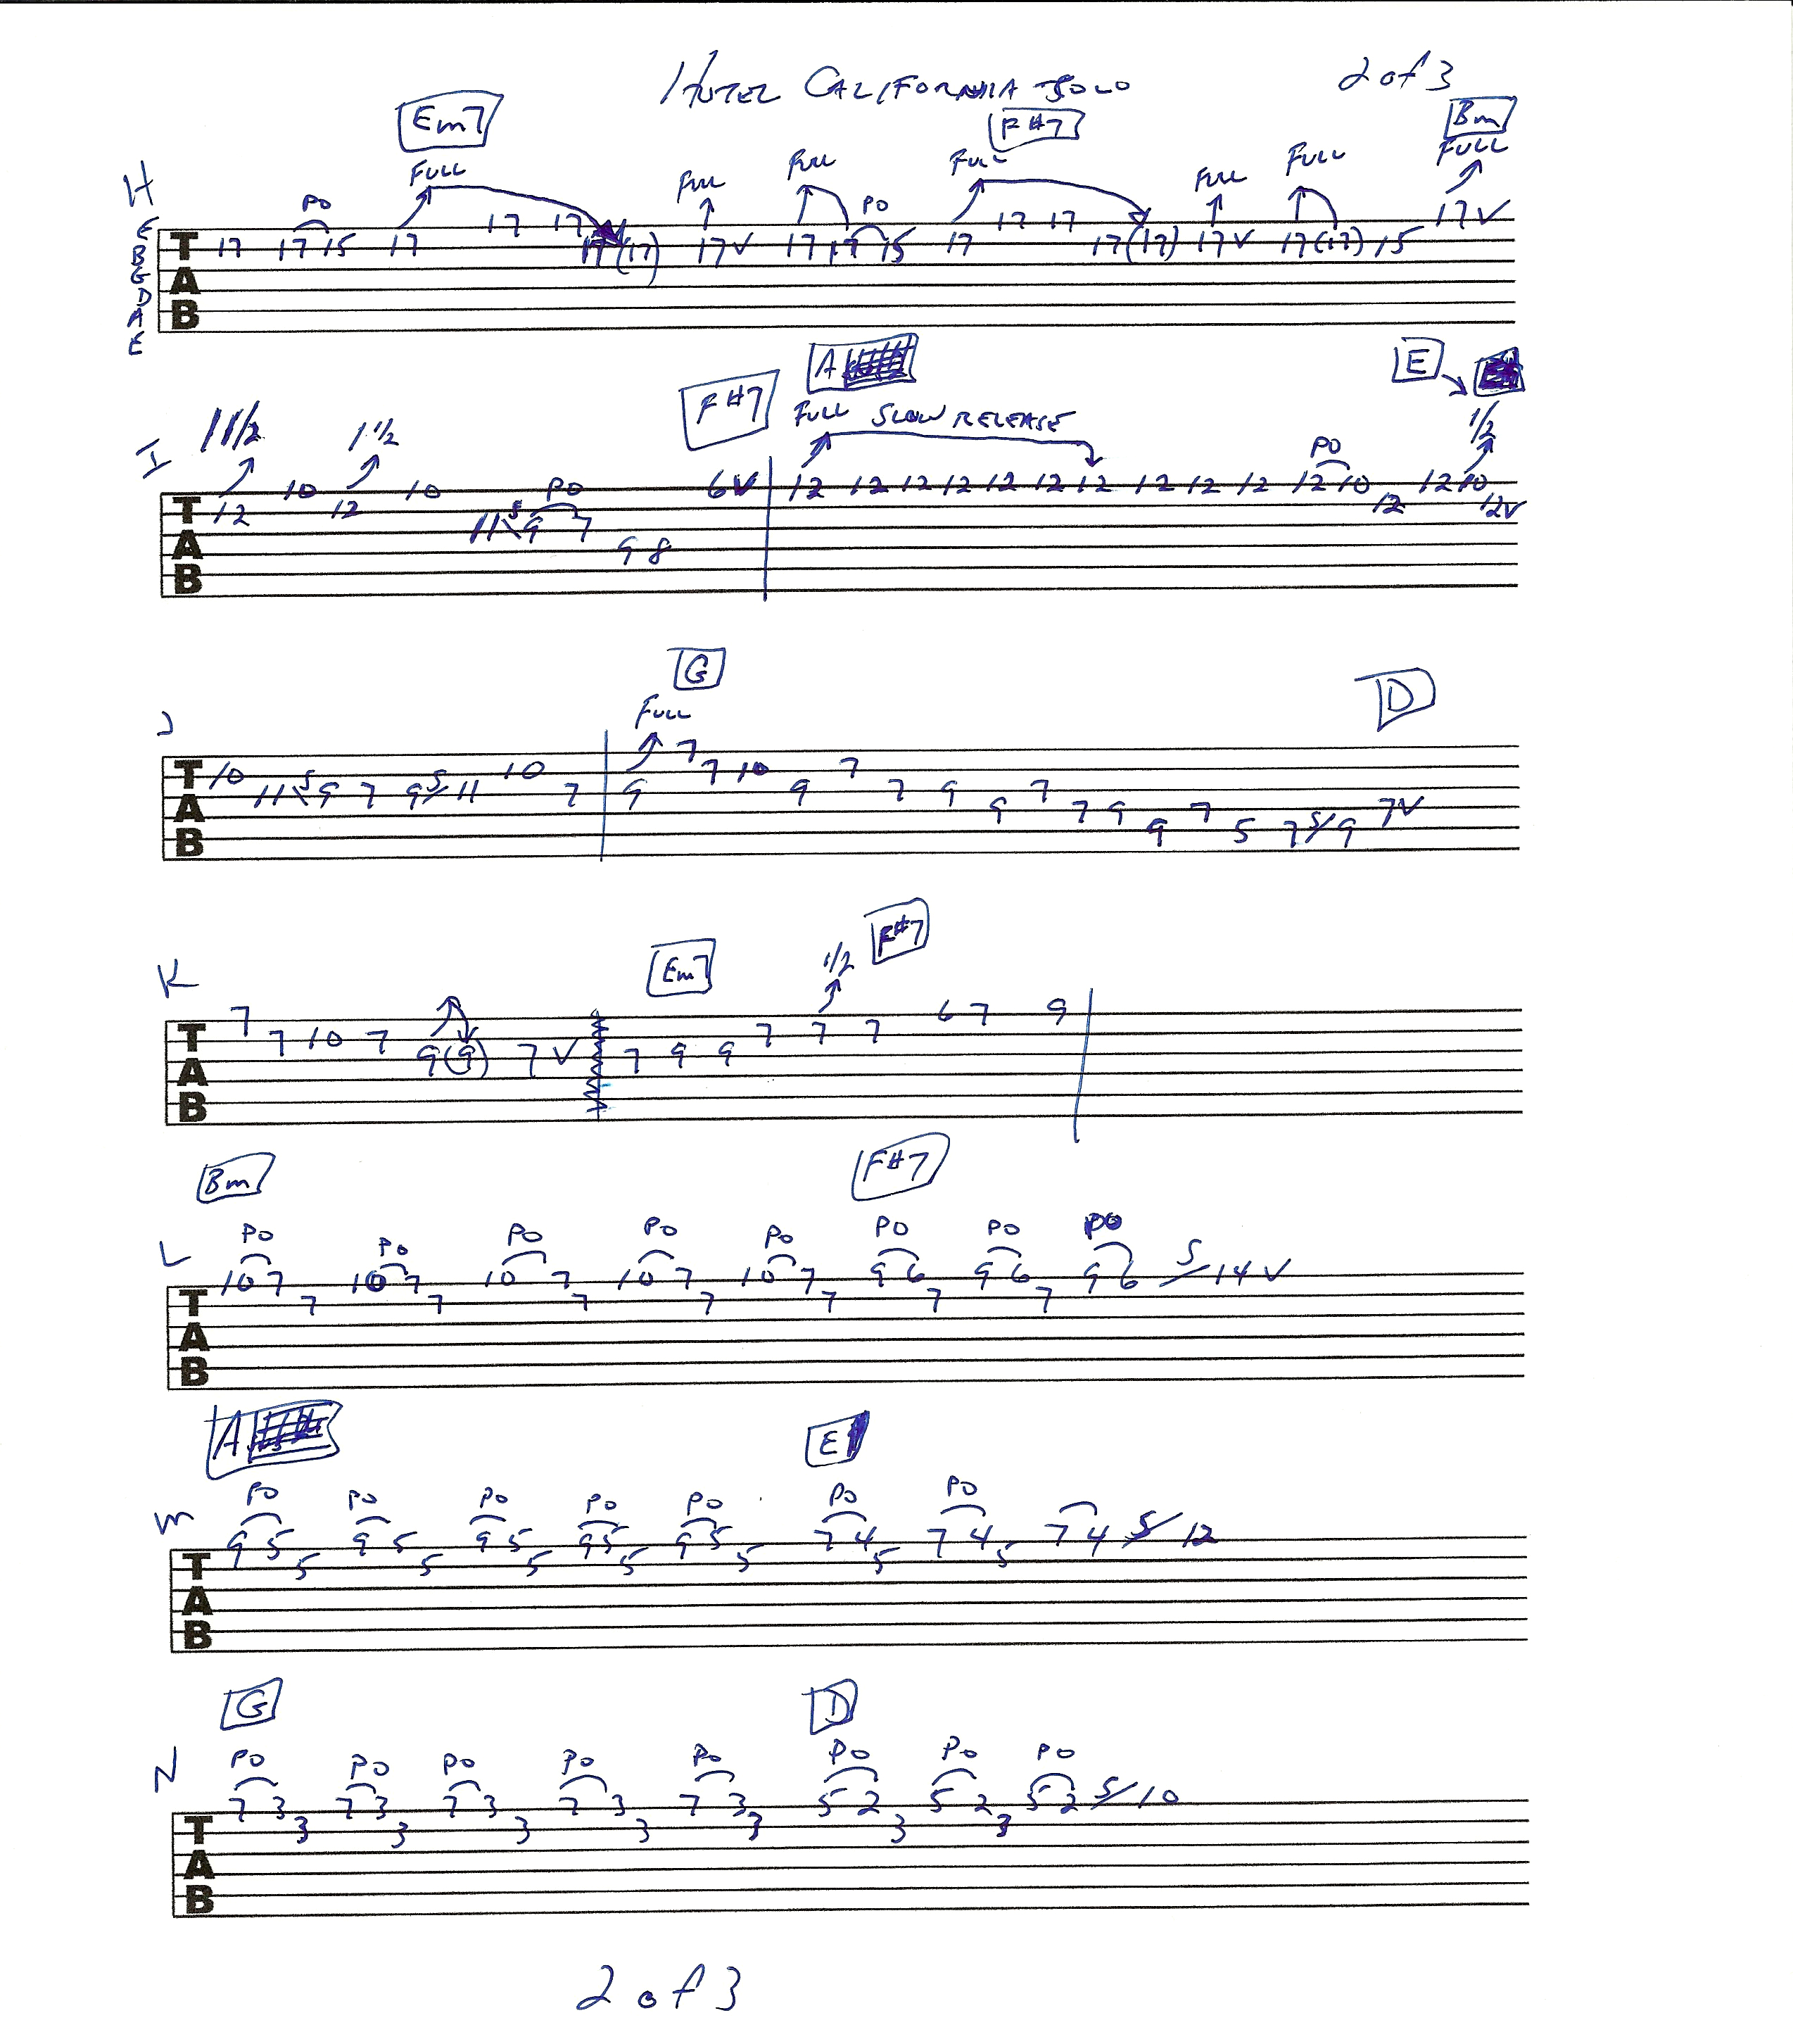 Hotel California guitar solo tablature : Rick McCargaru0026#39;s Guitar Licks, Songs and Music Industry News